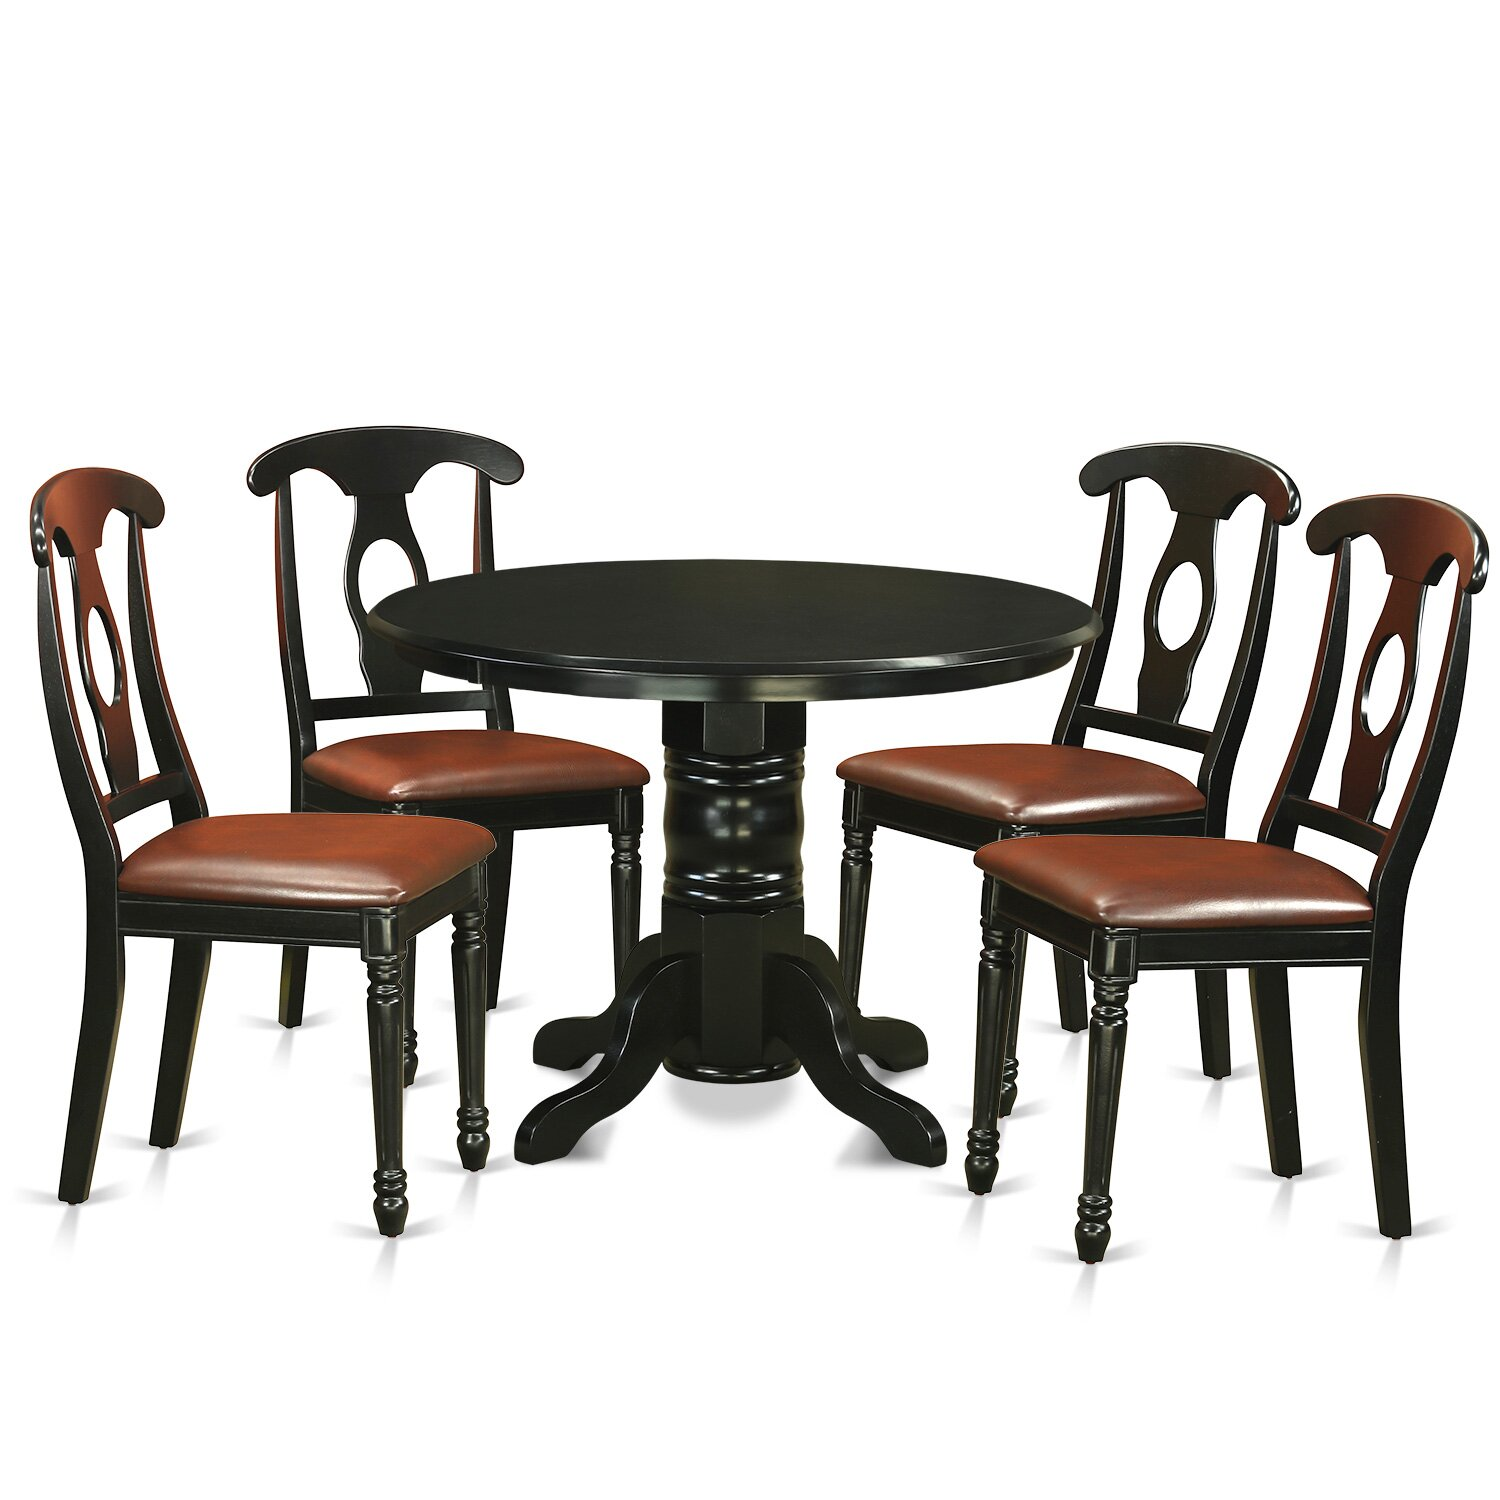 East west shelton 5 piece dining set reviews wayfair for Dining room chair set